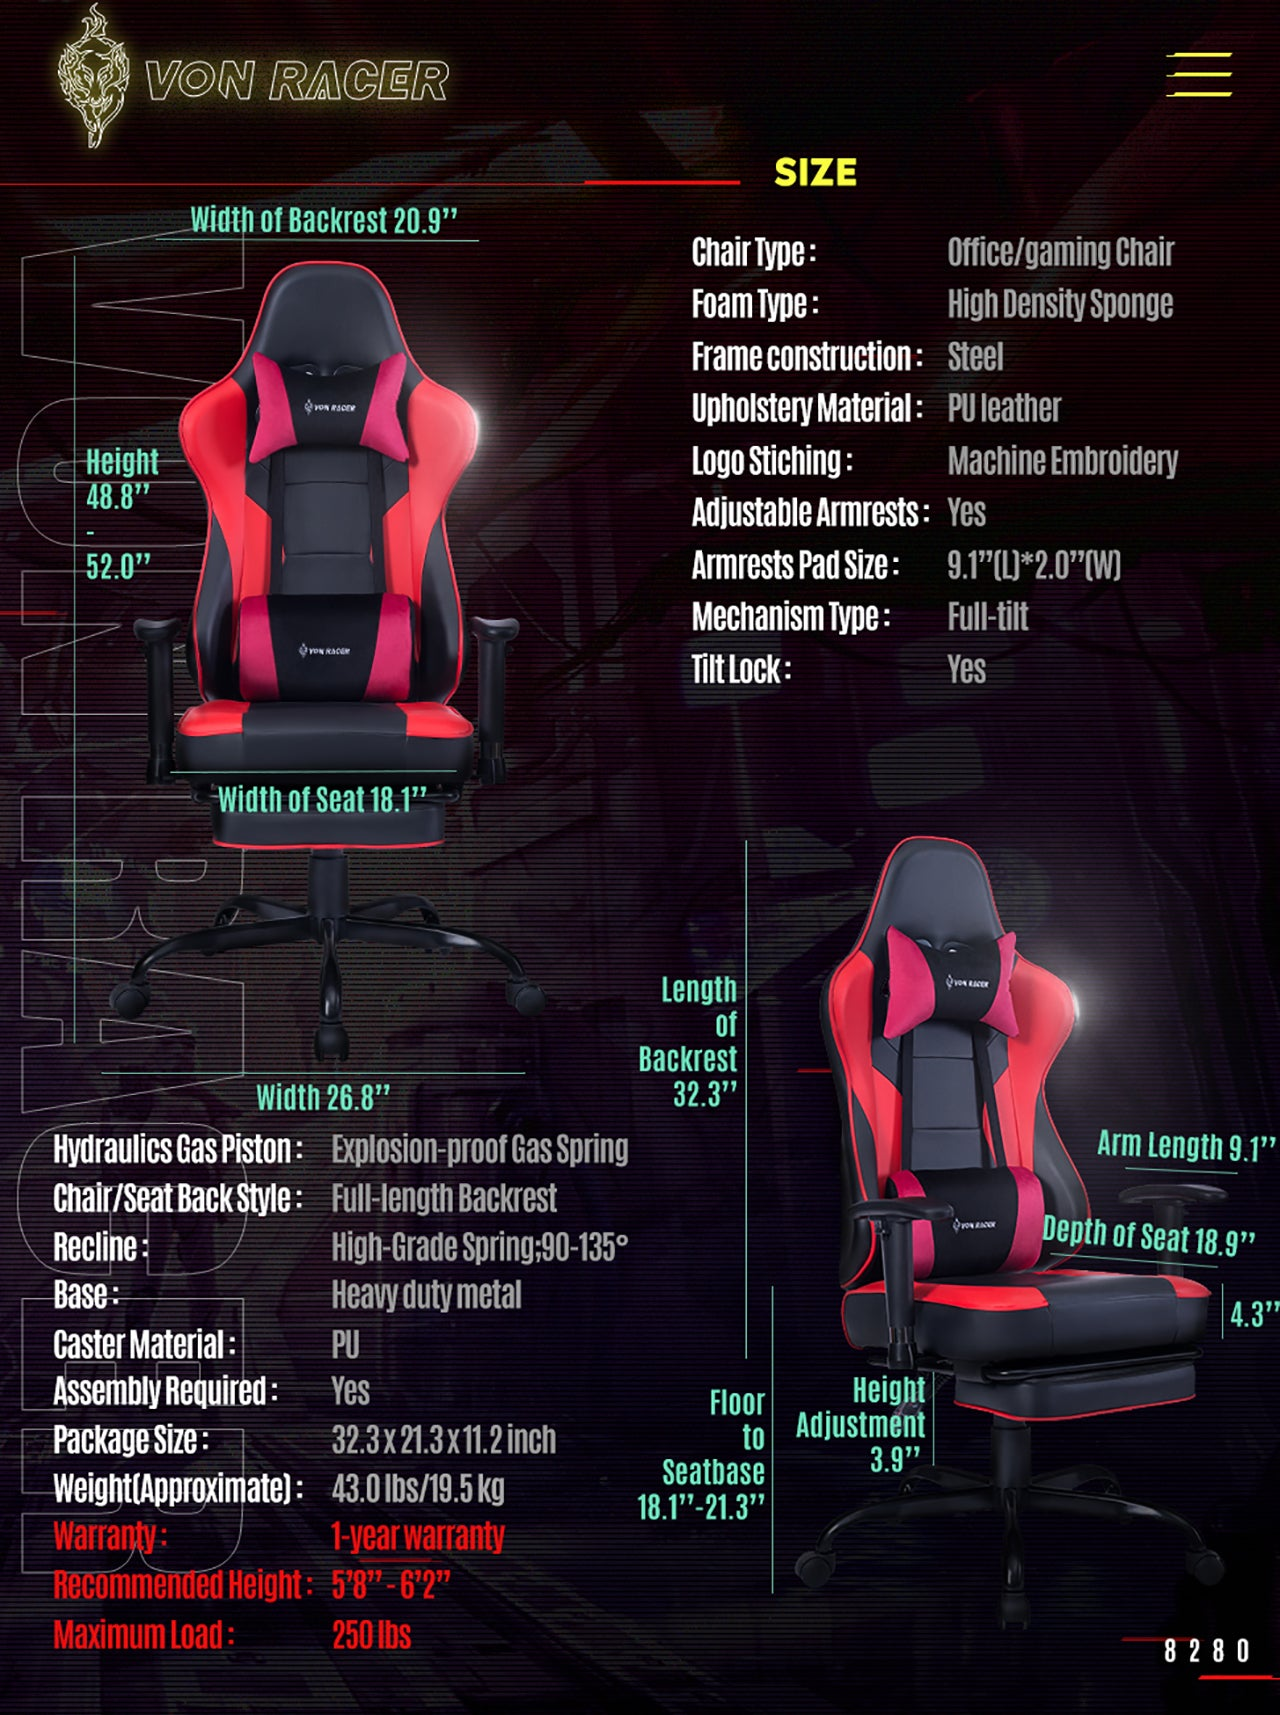 VON RACER ERGONOMIC GAMING CHAIR 8280 RED SPECIFICATION